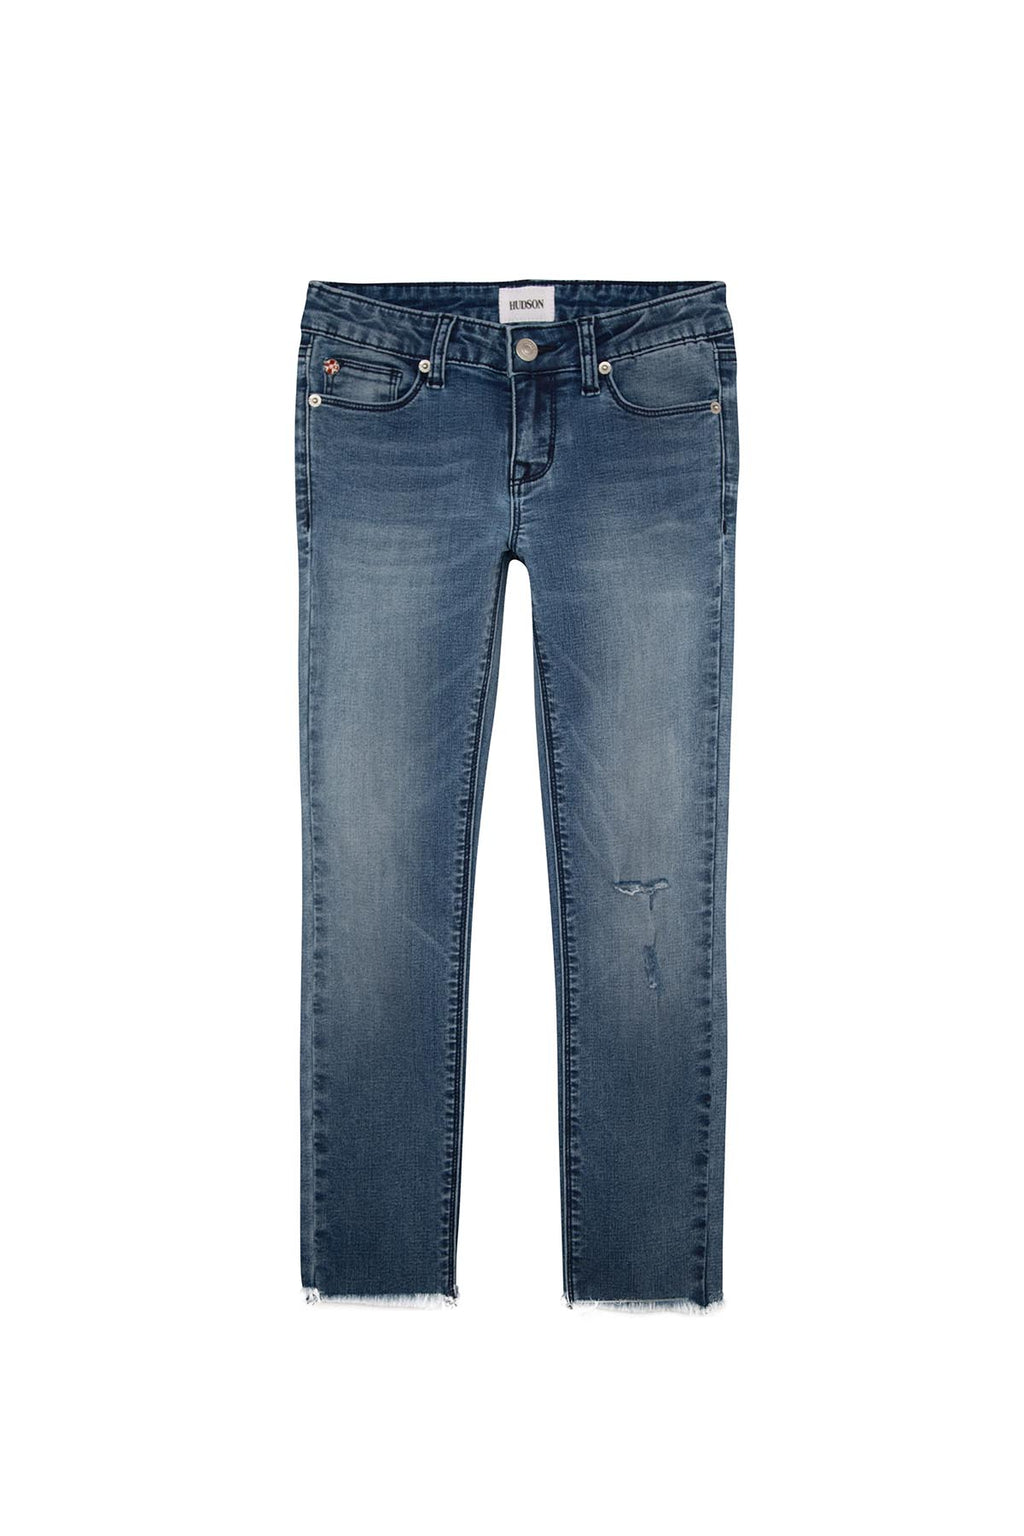 BIG GIRLS CAILIN SKINNY JEAN, SIZES 7-16 - CAILIN SKINNY PANT - Image 1